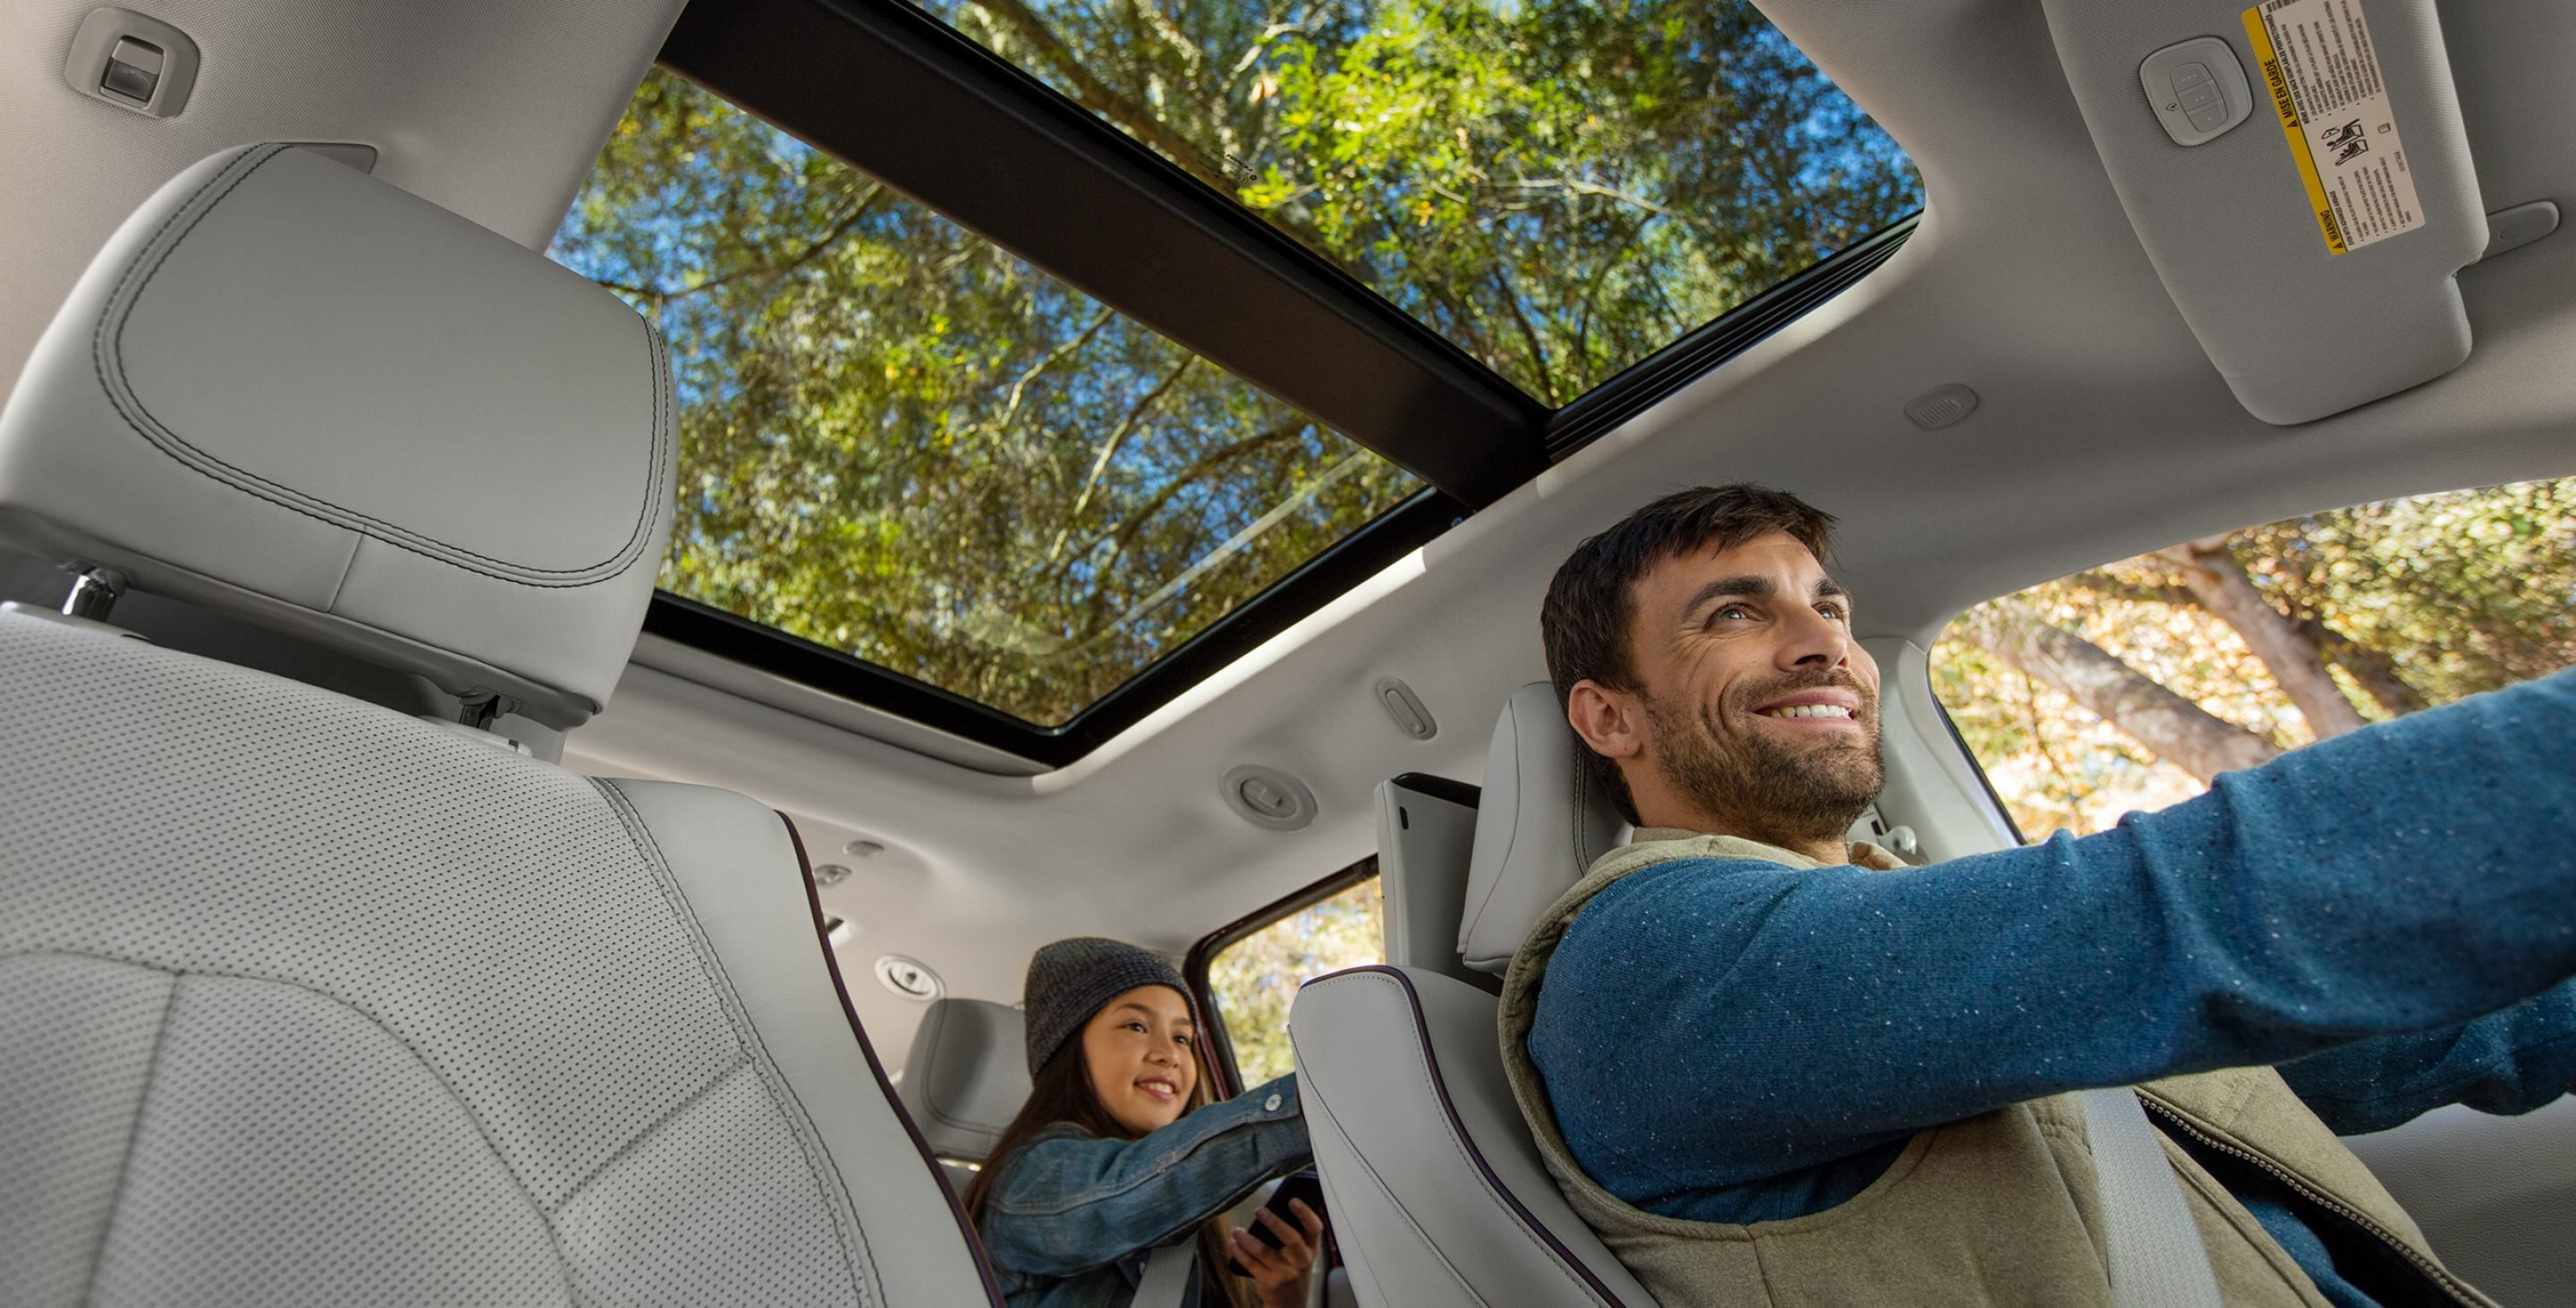 2017-chrysler-pacifica-gallery-interior-3.jpg.image.2880